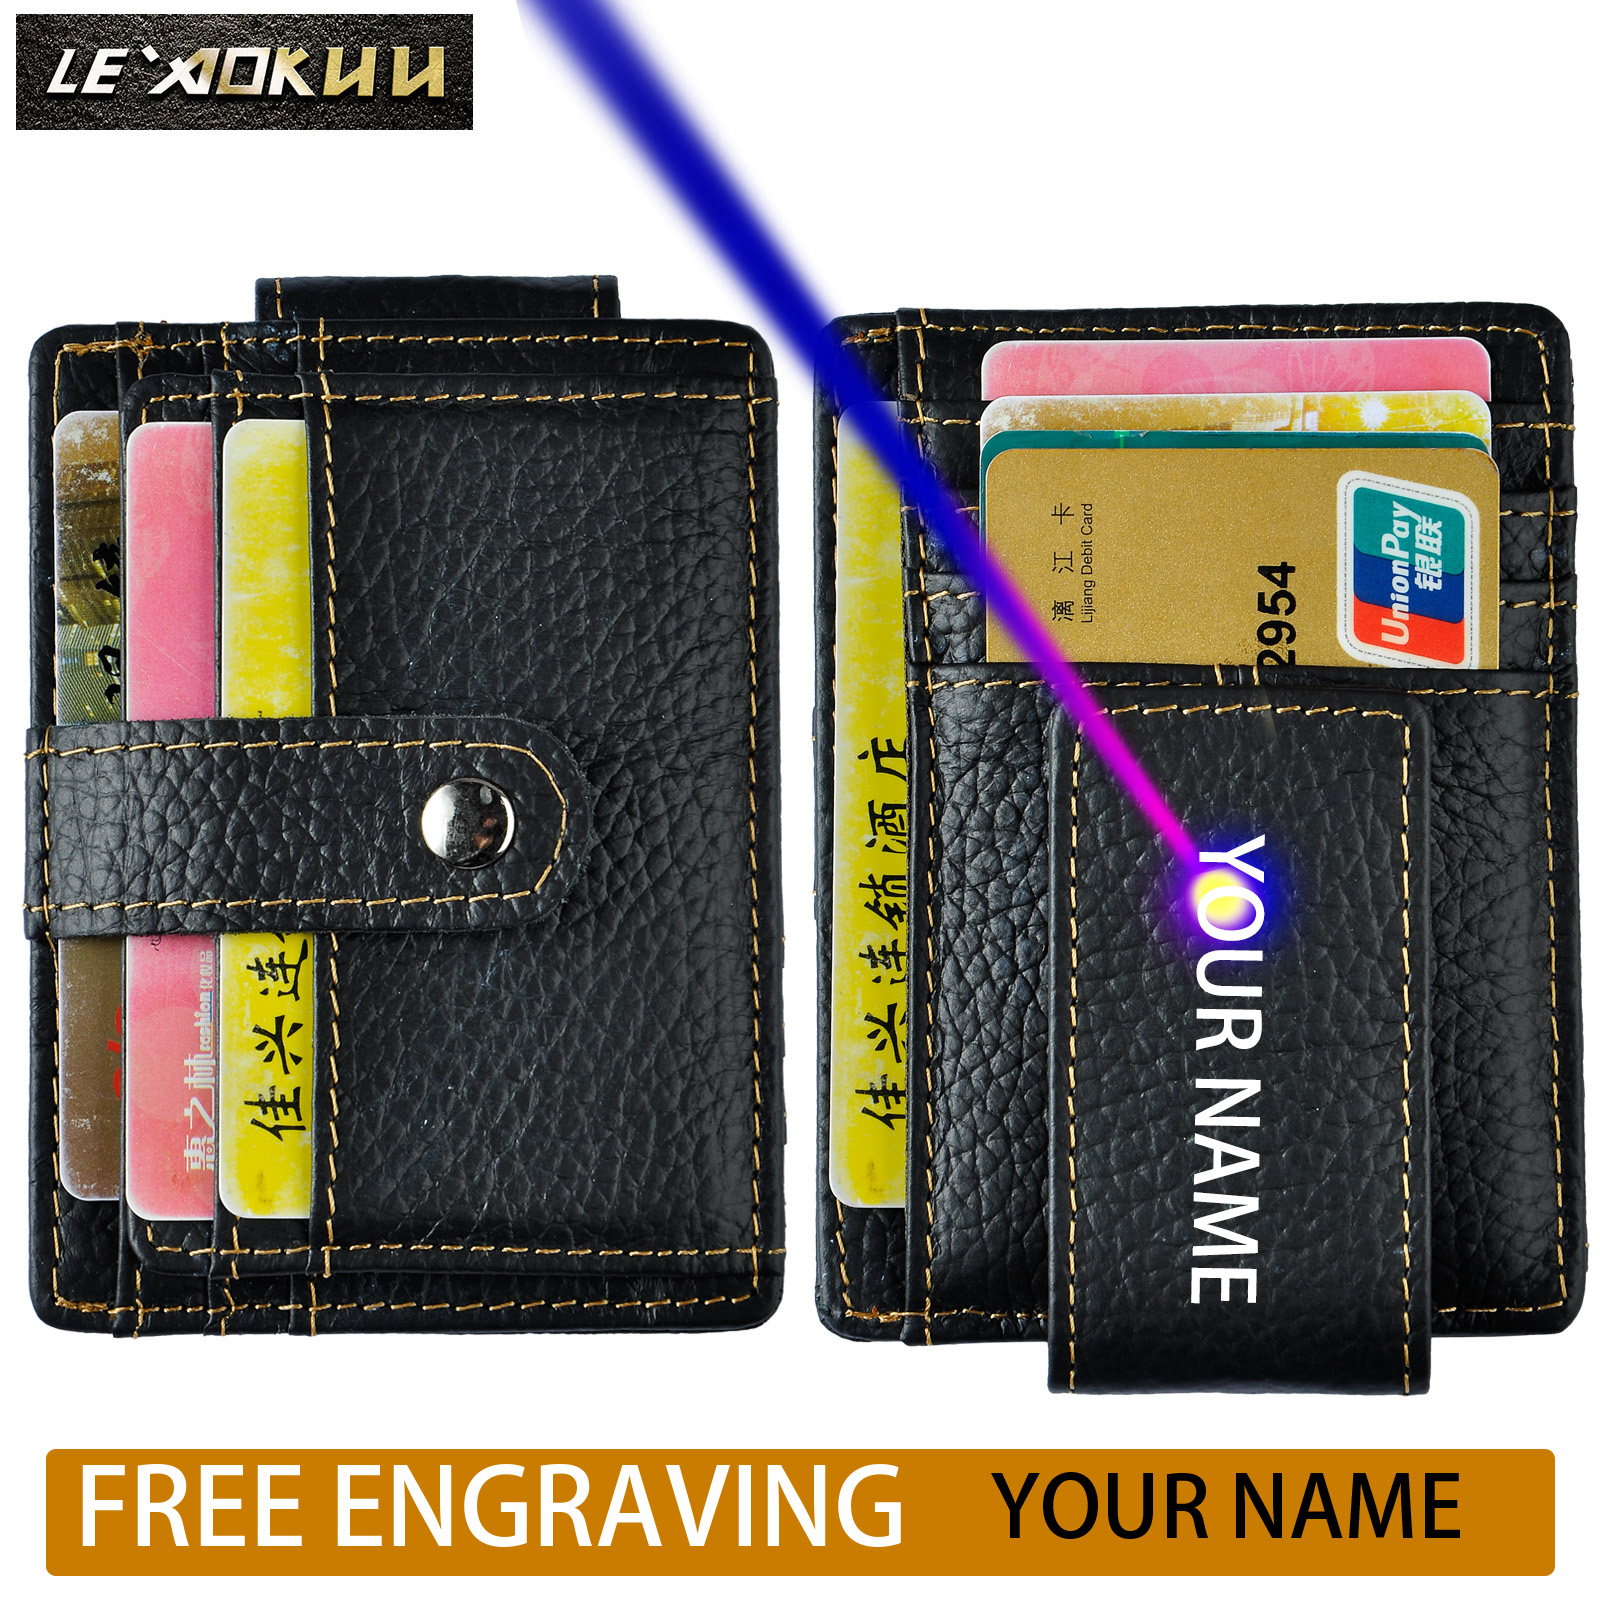 Le/'aokuu Genuine Leather Magnet Money Clip Credit Case Case Holder Slim Wallet